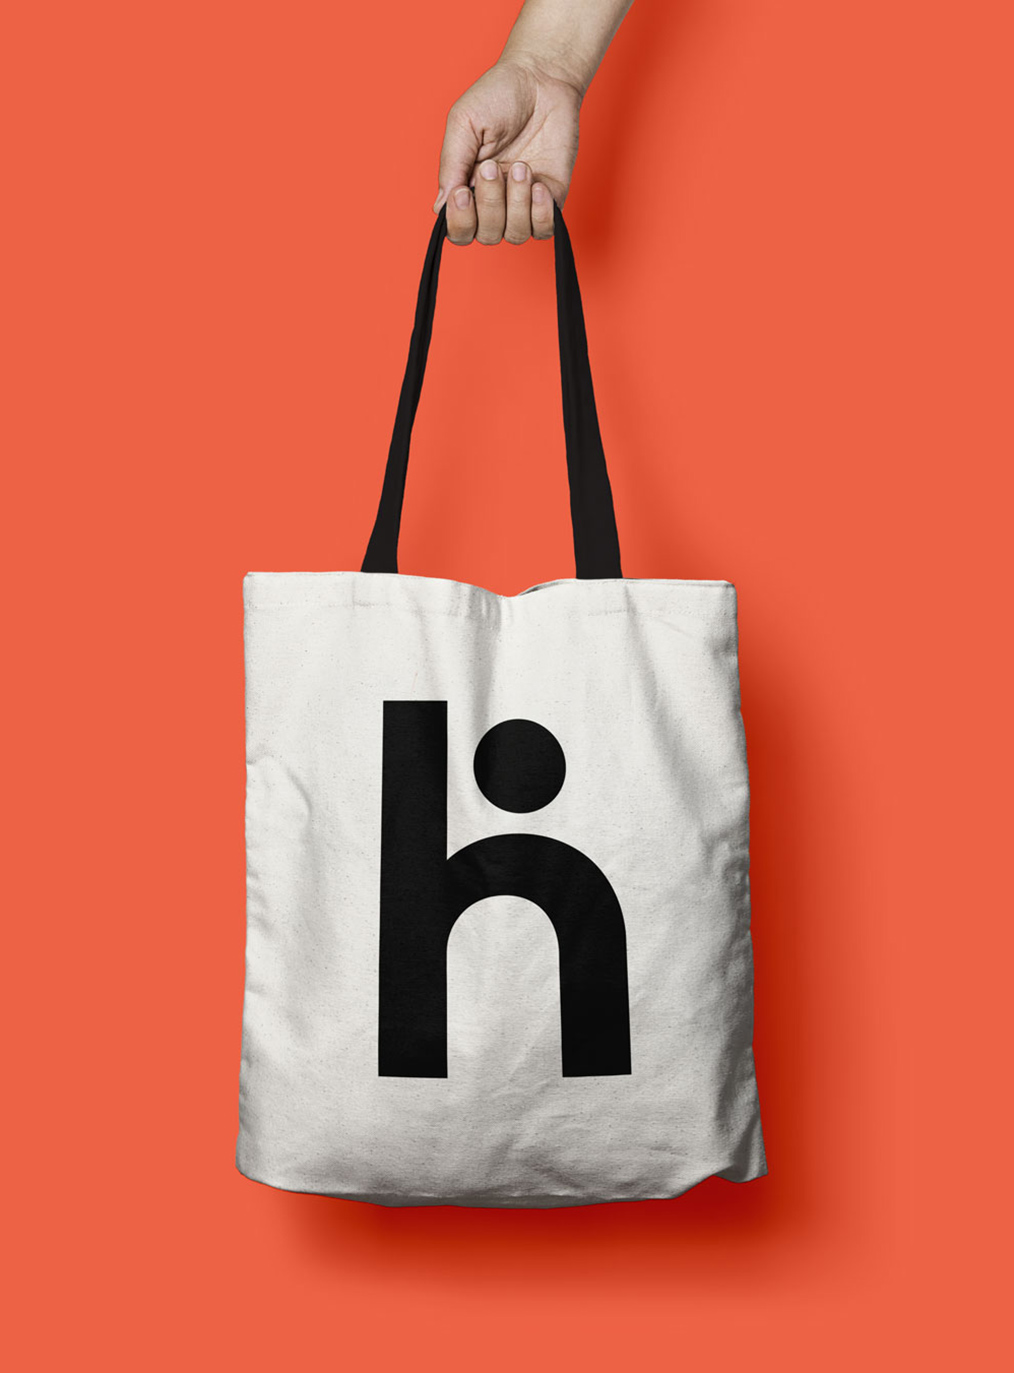 Tote bag with Hero Meals logo